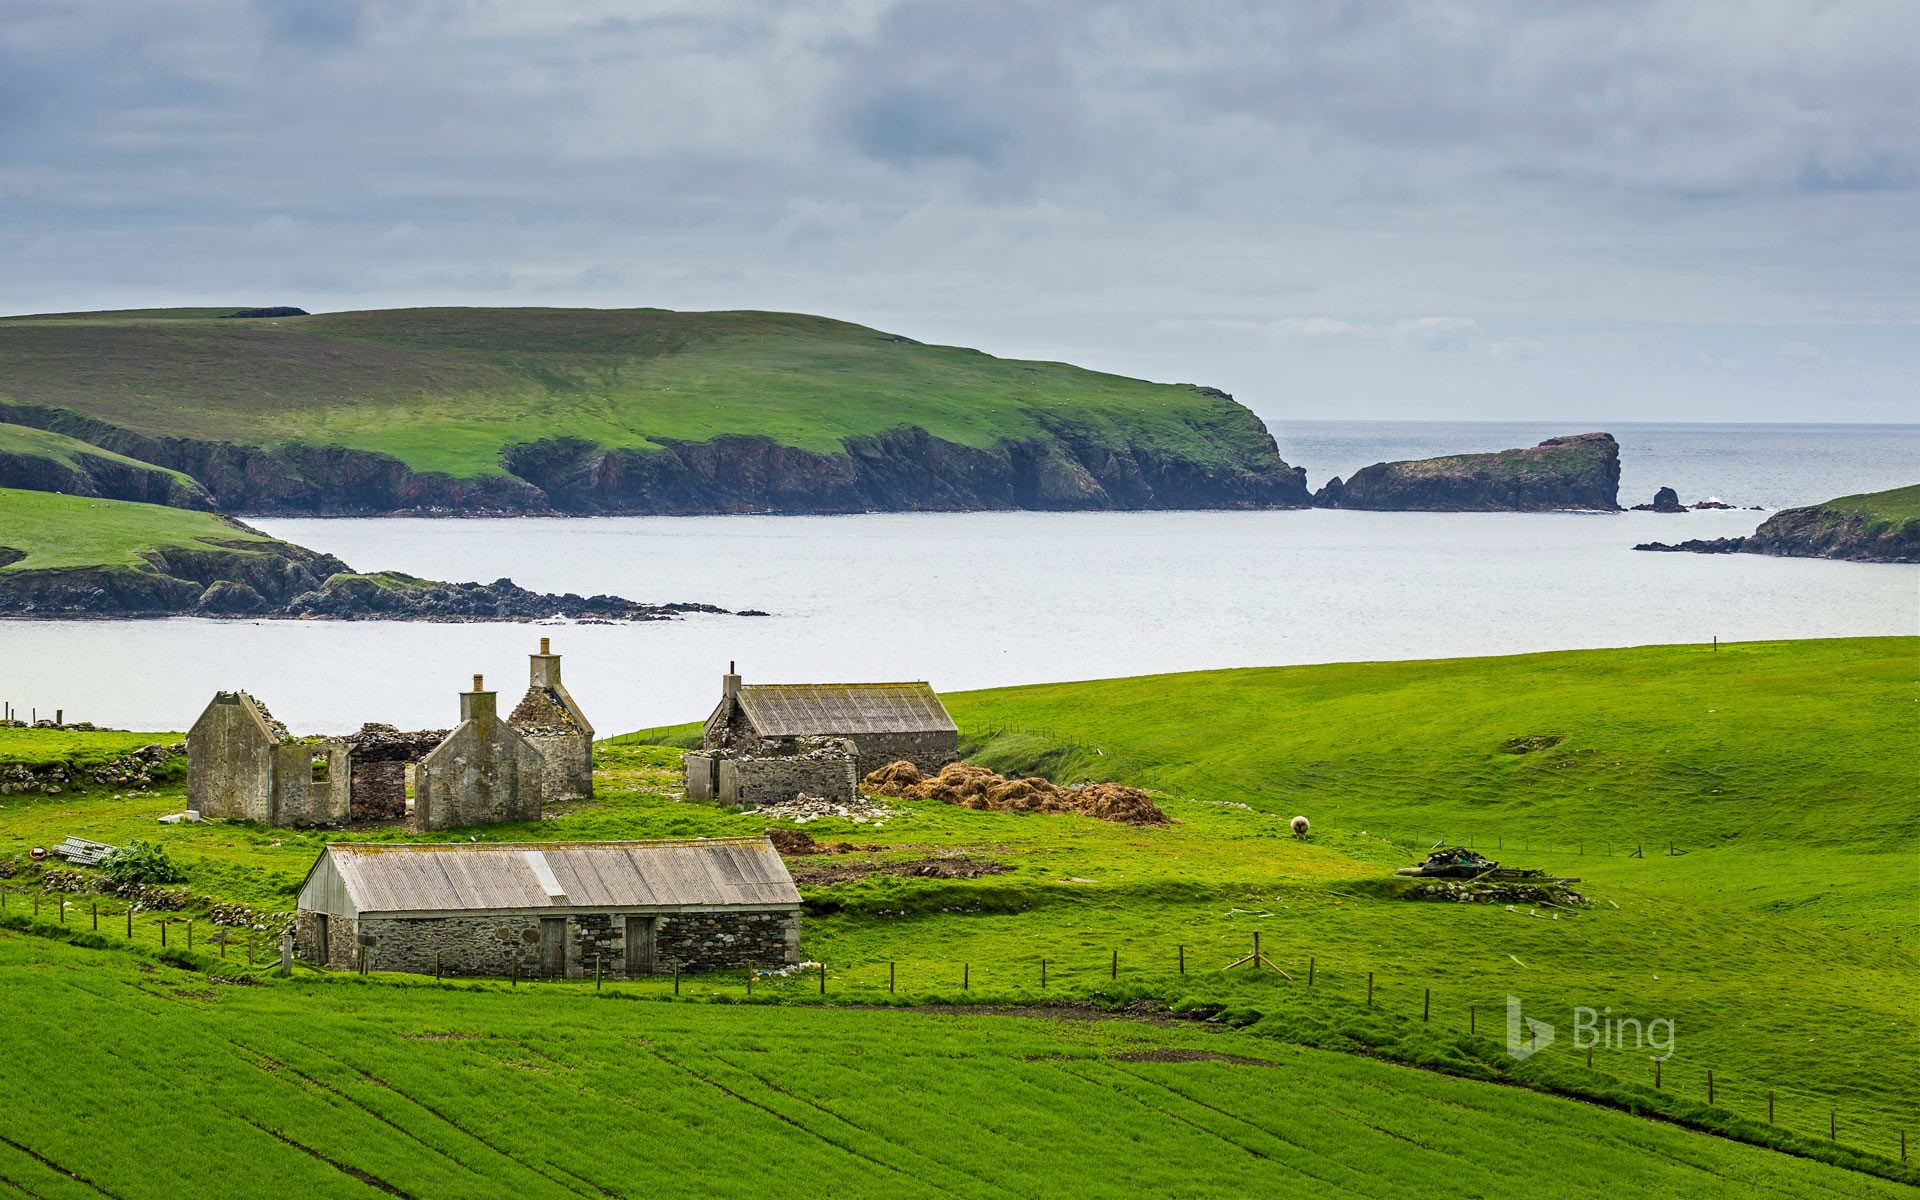 An old farm in the Shetland Islands, Scotland